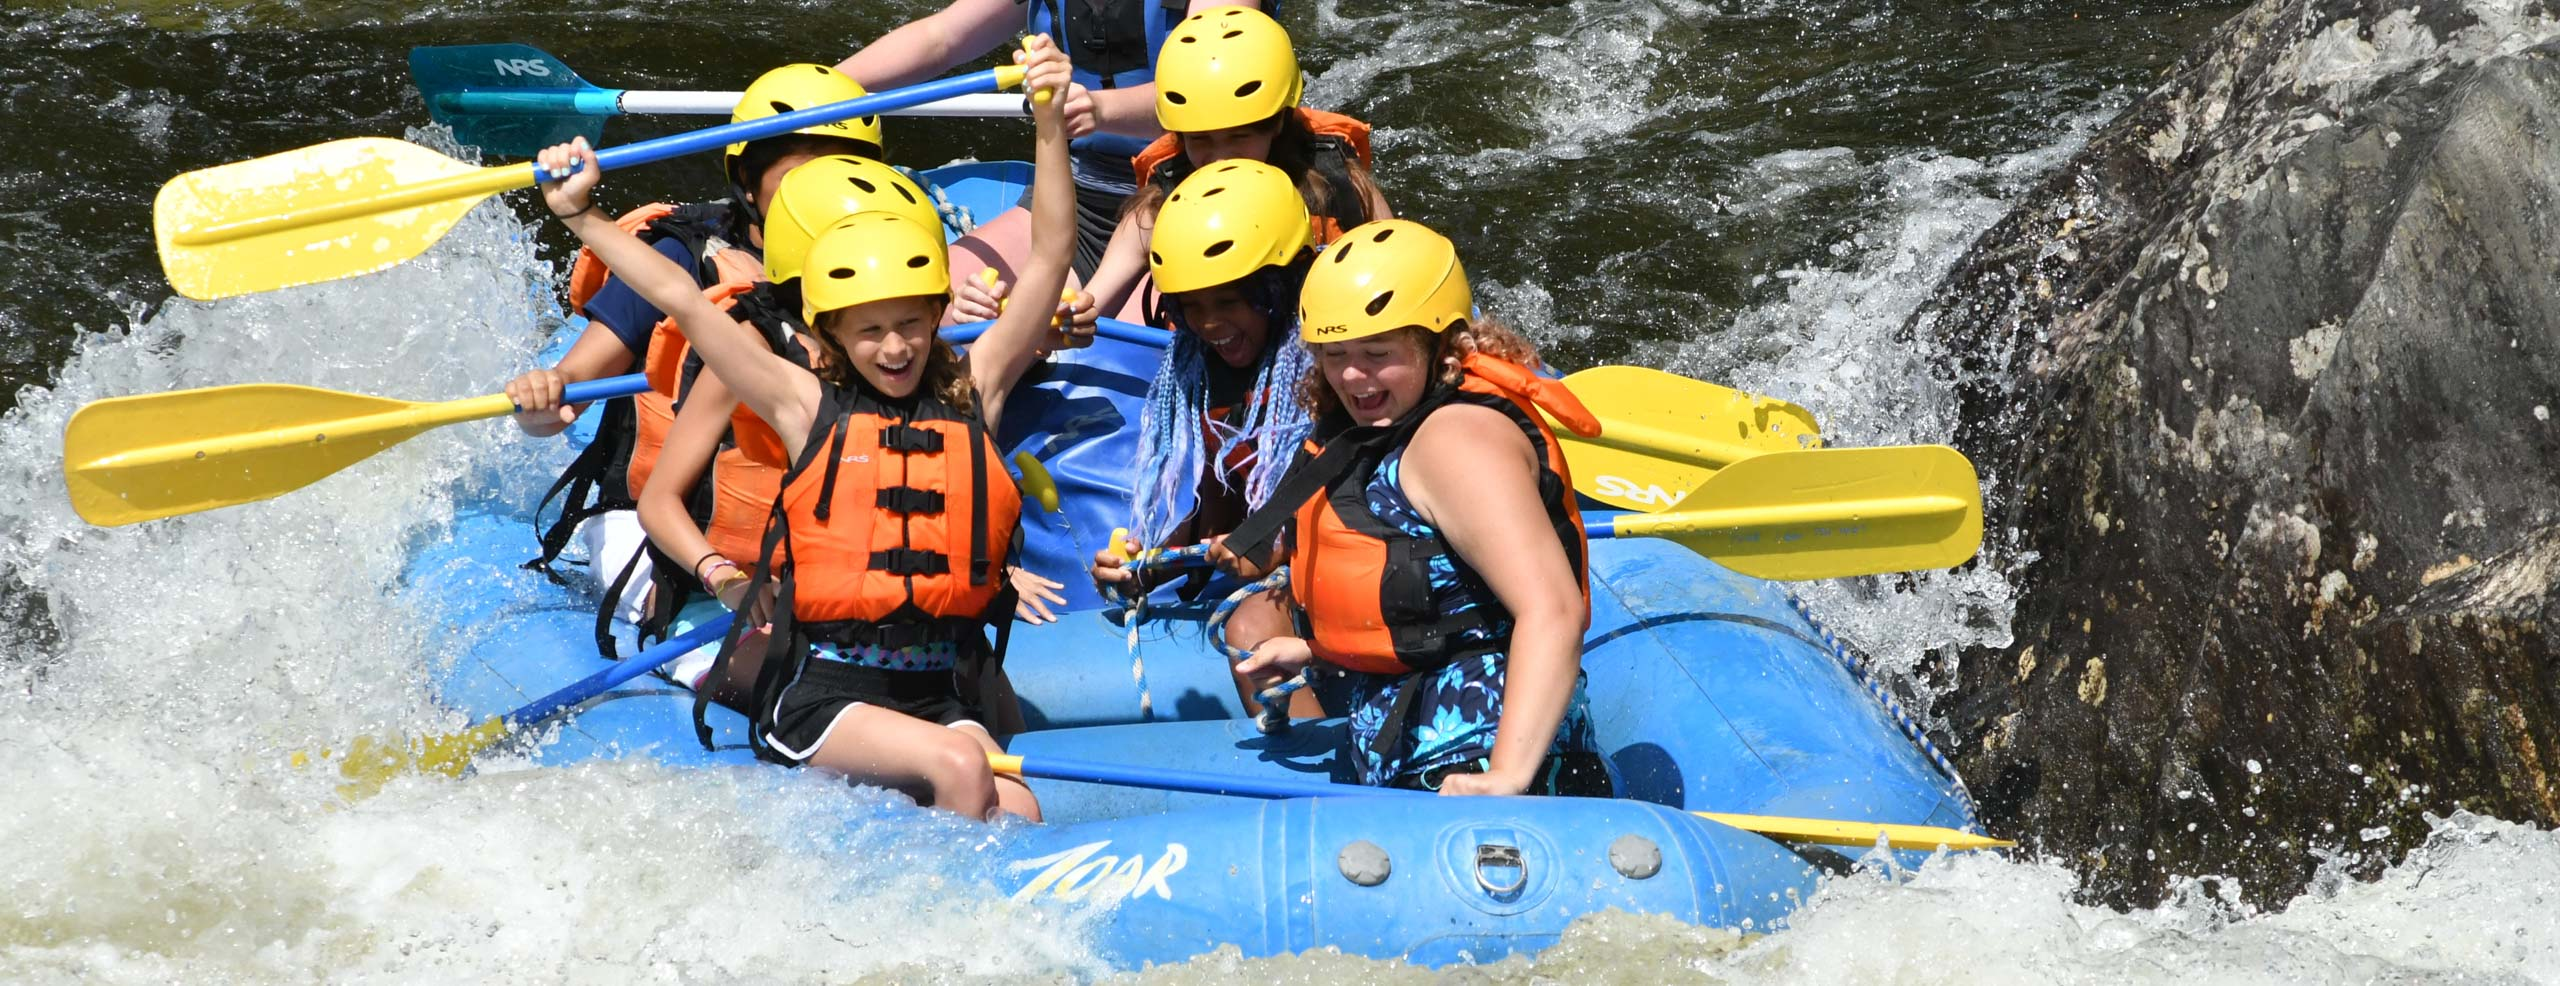 Group of girls excitedly rafting down the zoar gap